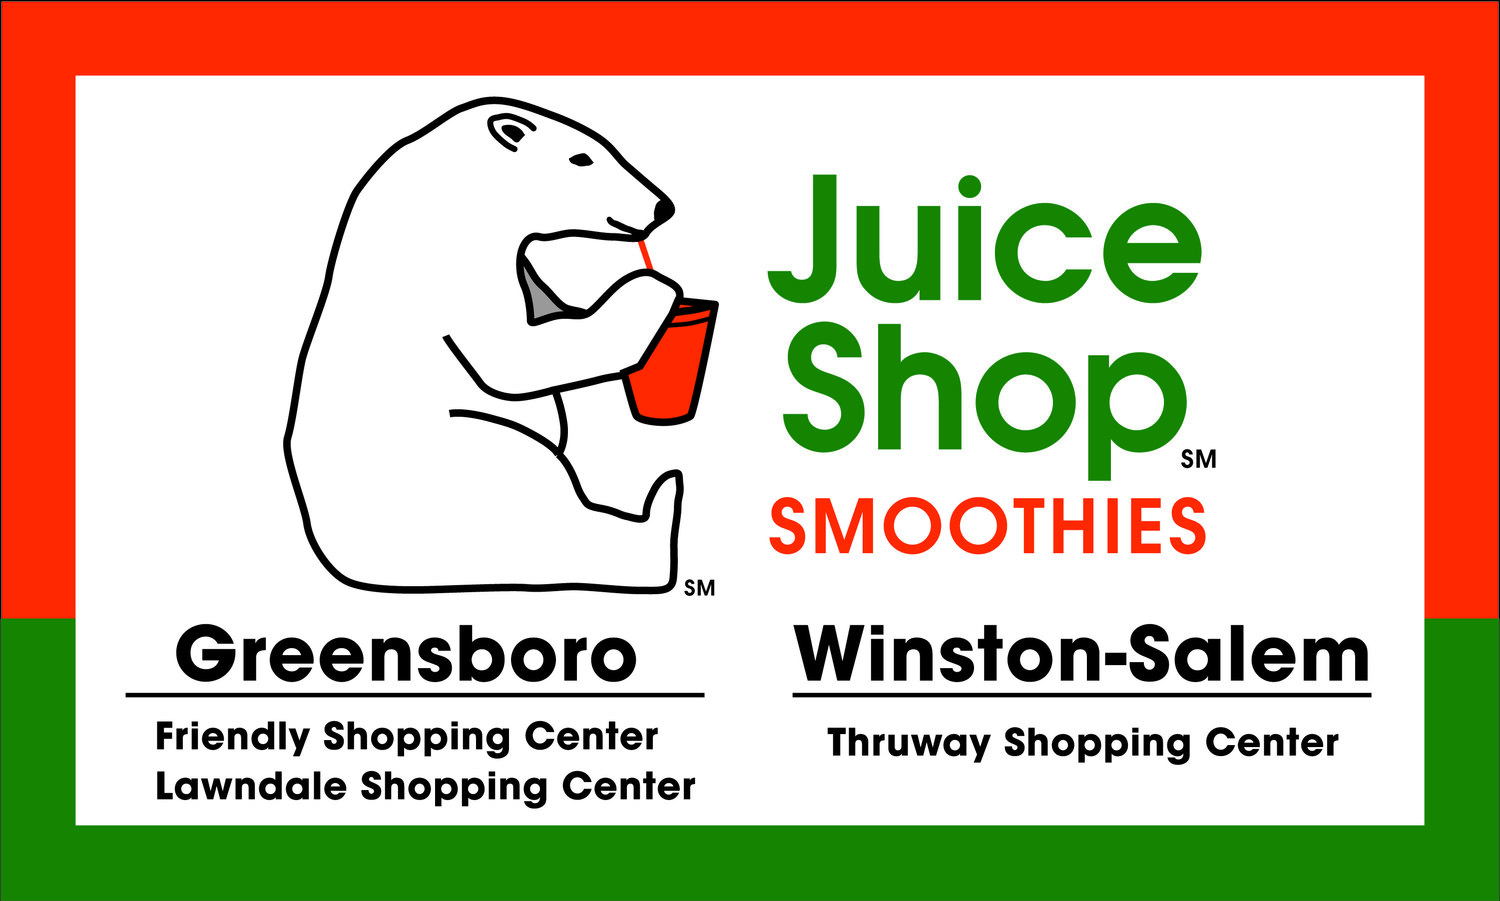 Juice Shop Smoothies